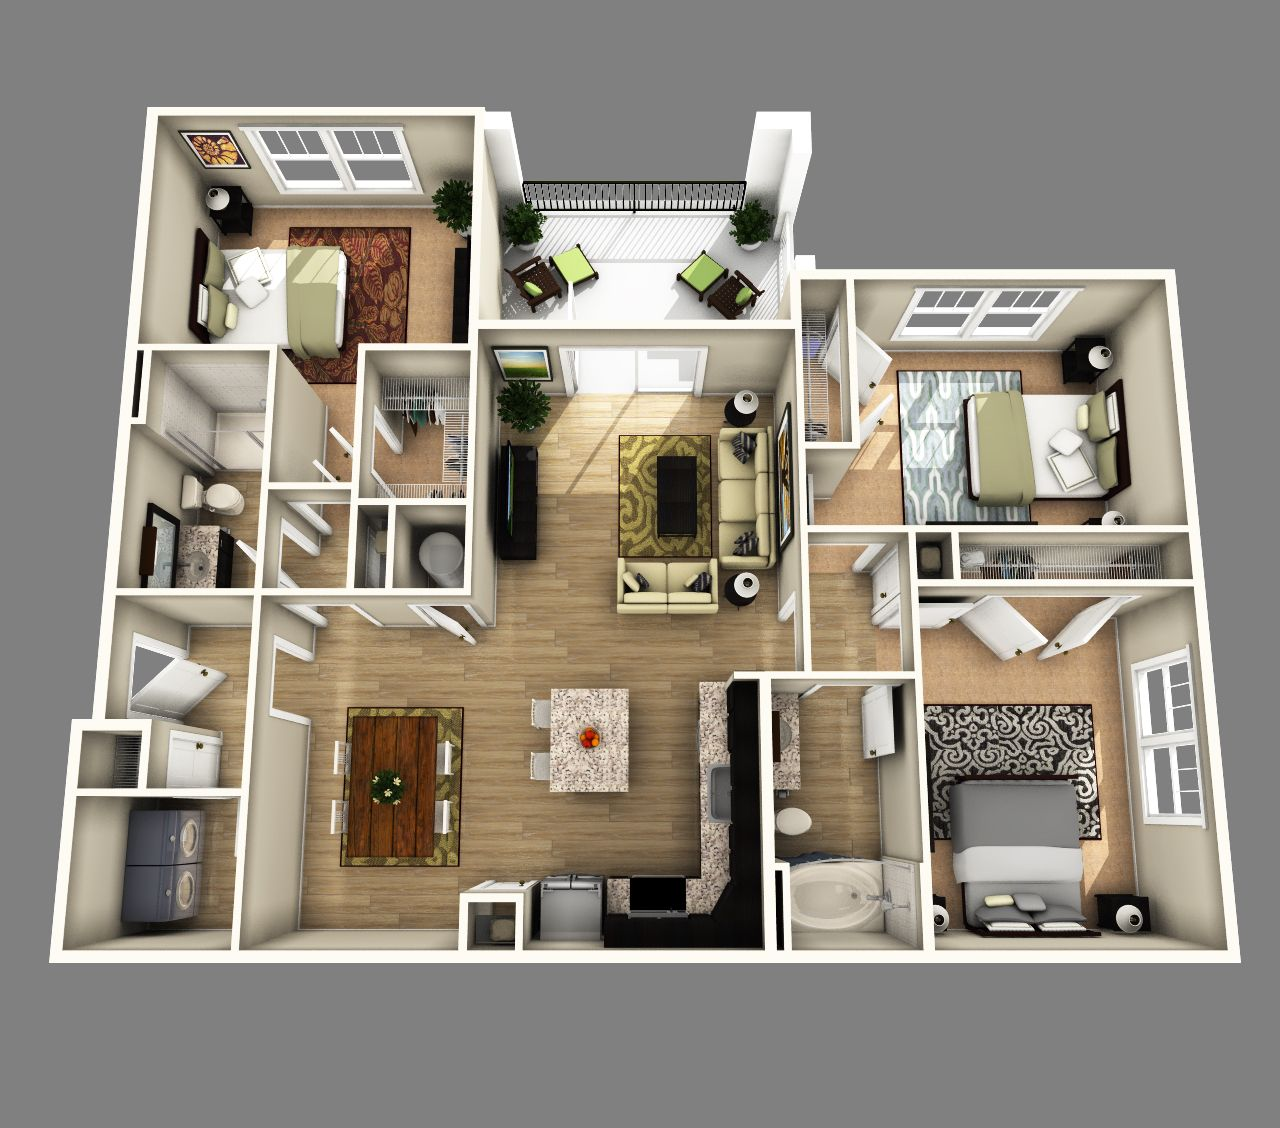 3d open floor plan 3 bedroom 2 bathroom google search for 3 bedroom 2 bathroom